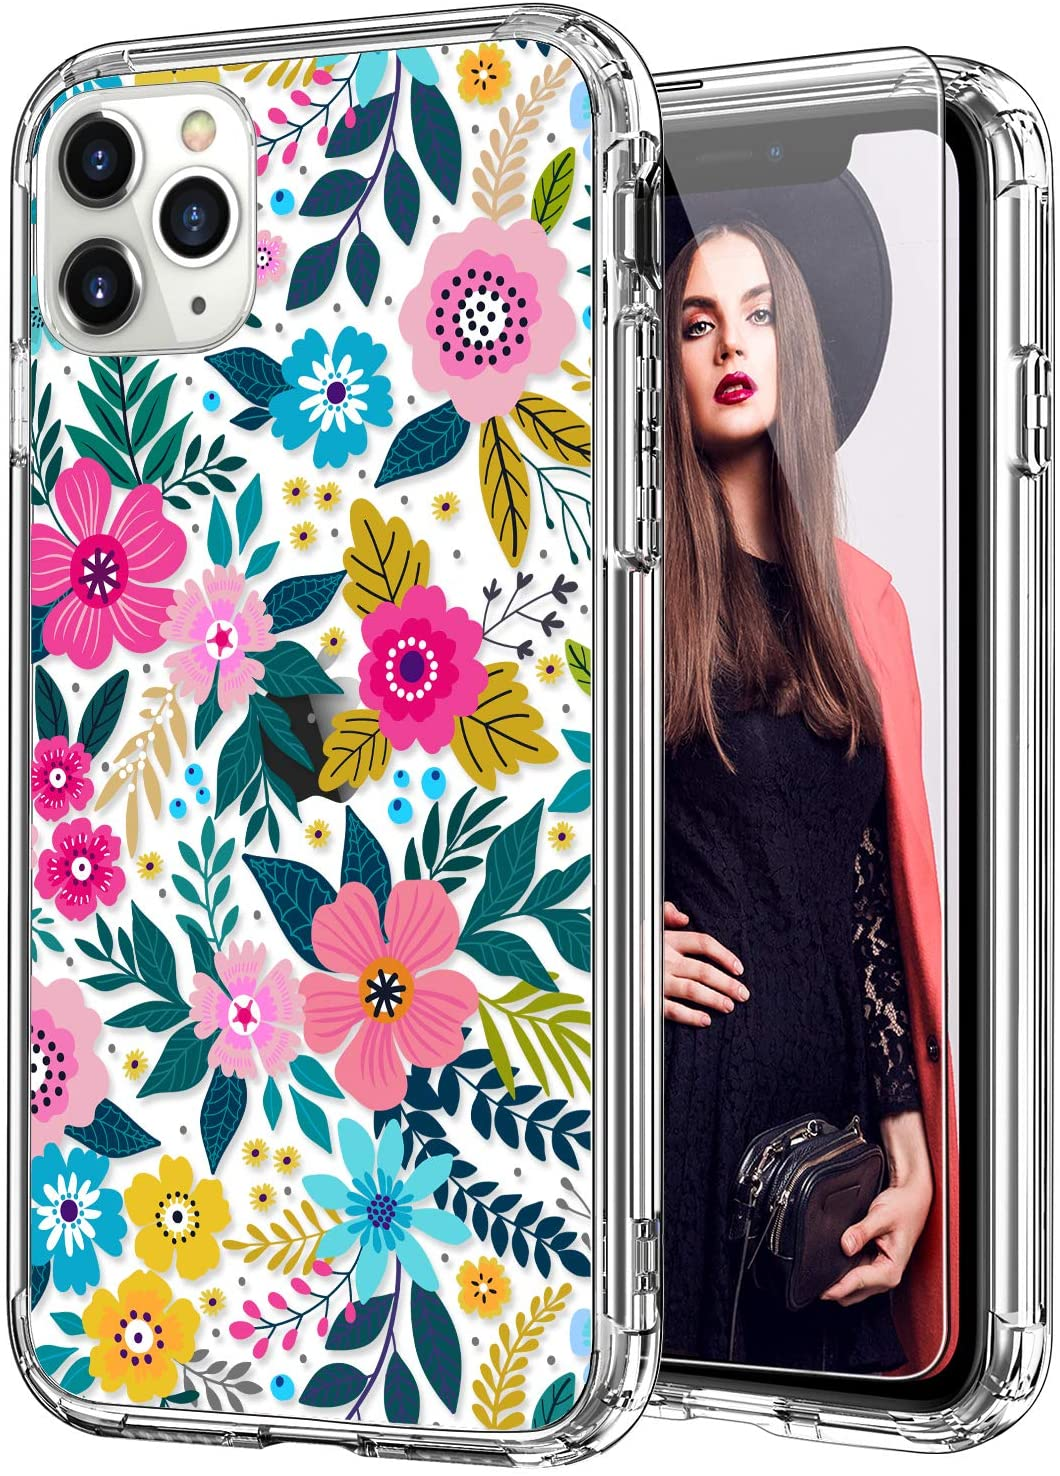 ICEDIO iPhone 11 Pro Case with Screen Protector,Clear with Colorful Blooming Floral Flower Patterns for Girls Women,Slim Fit TPU Cover Protective Phone Case for Apple iPhone 11 Pro 5.8 Inch